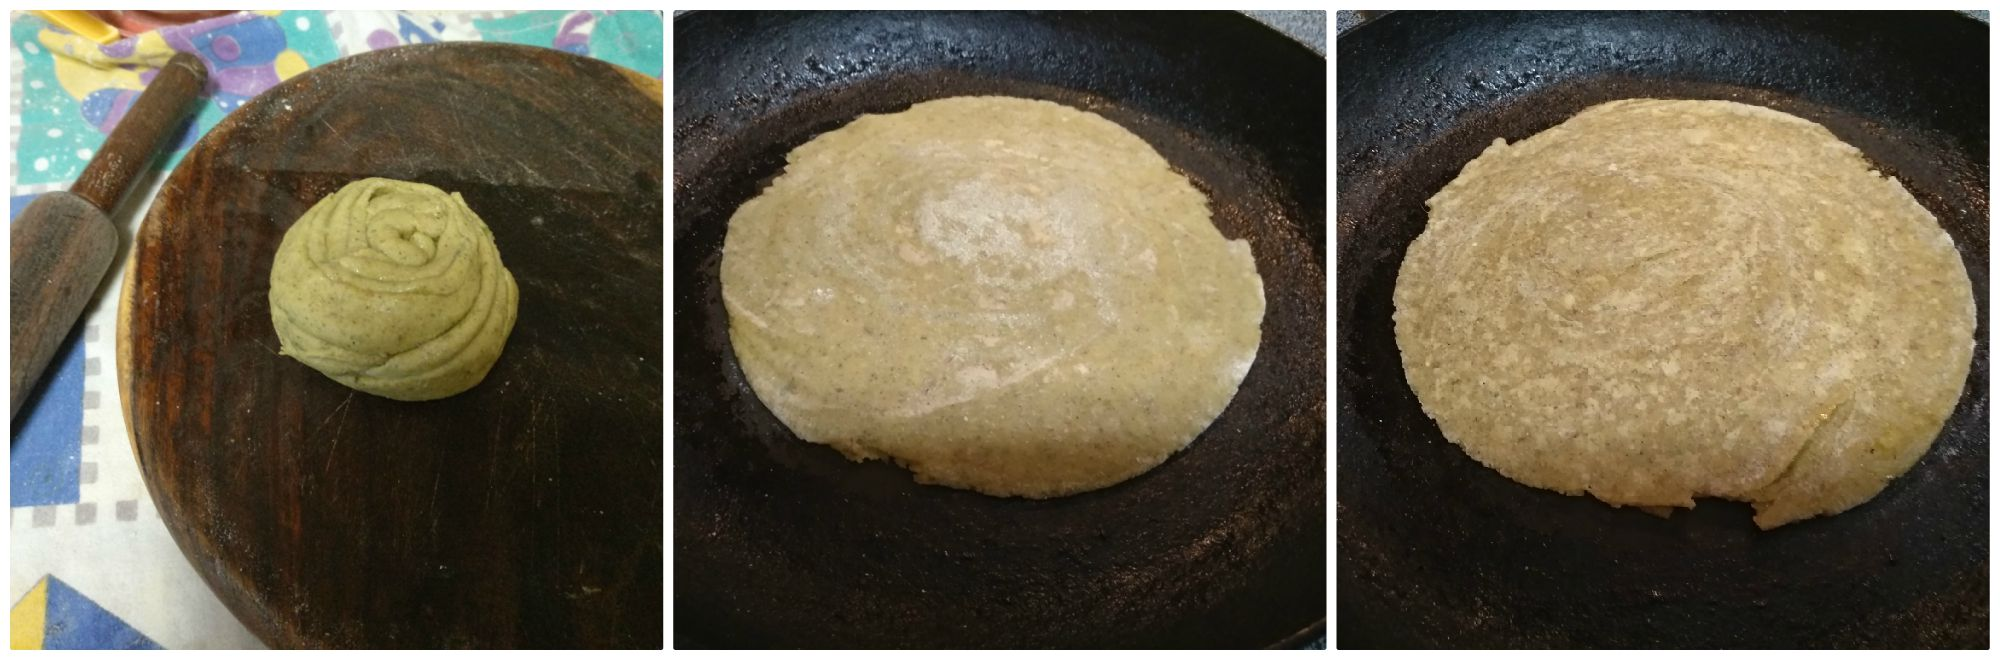 pudina laccha paratha is rolled out and ready to fry on both sides.